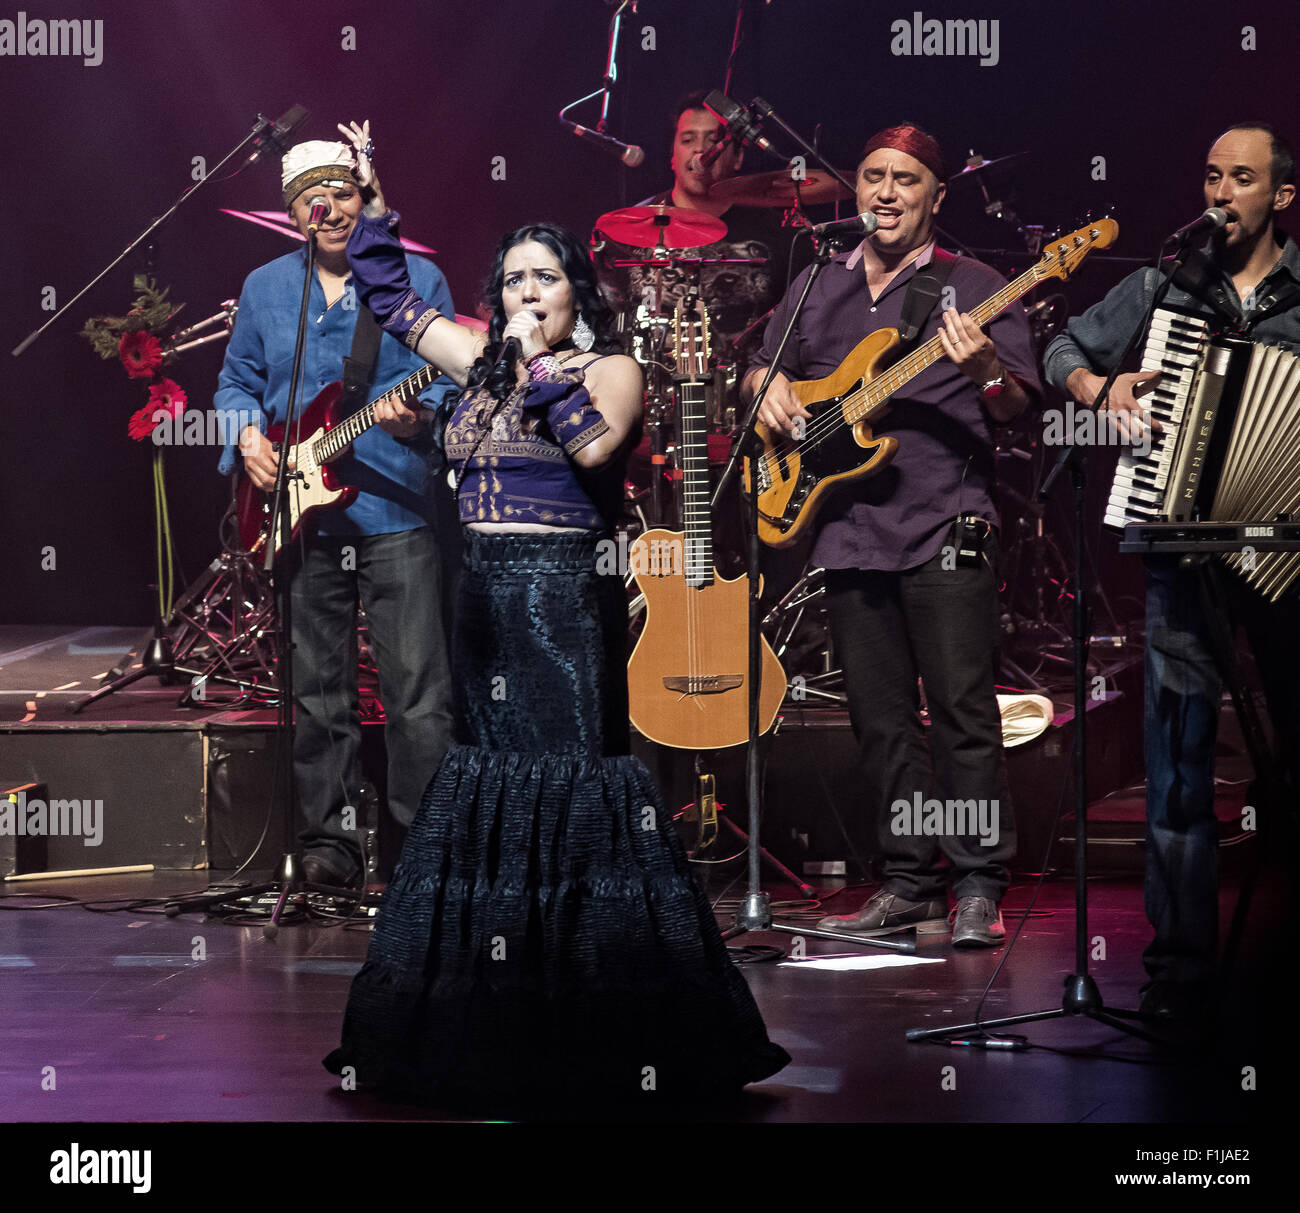 Uruguay  29th Aug, 2015  Lila Downs is one of the most important